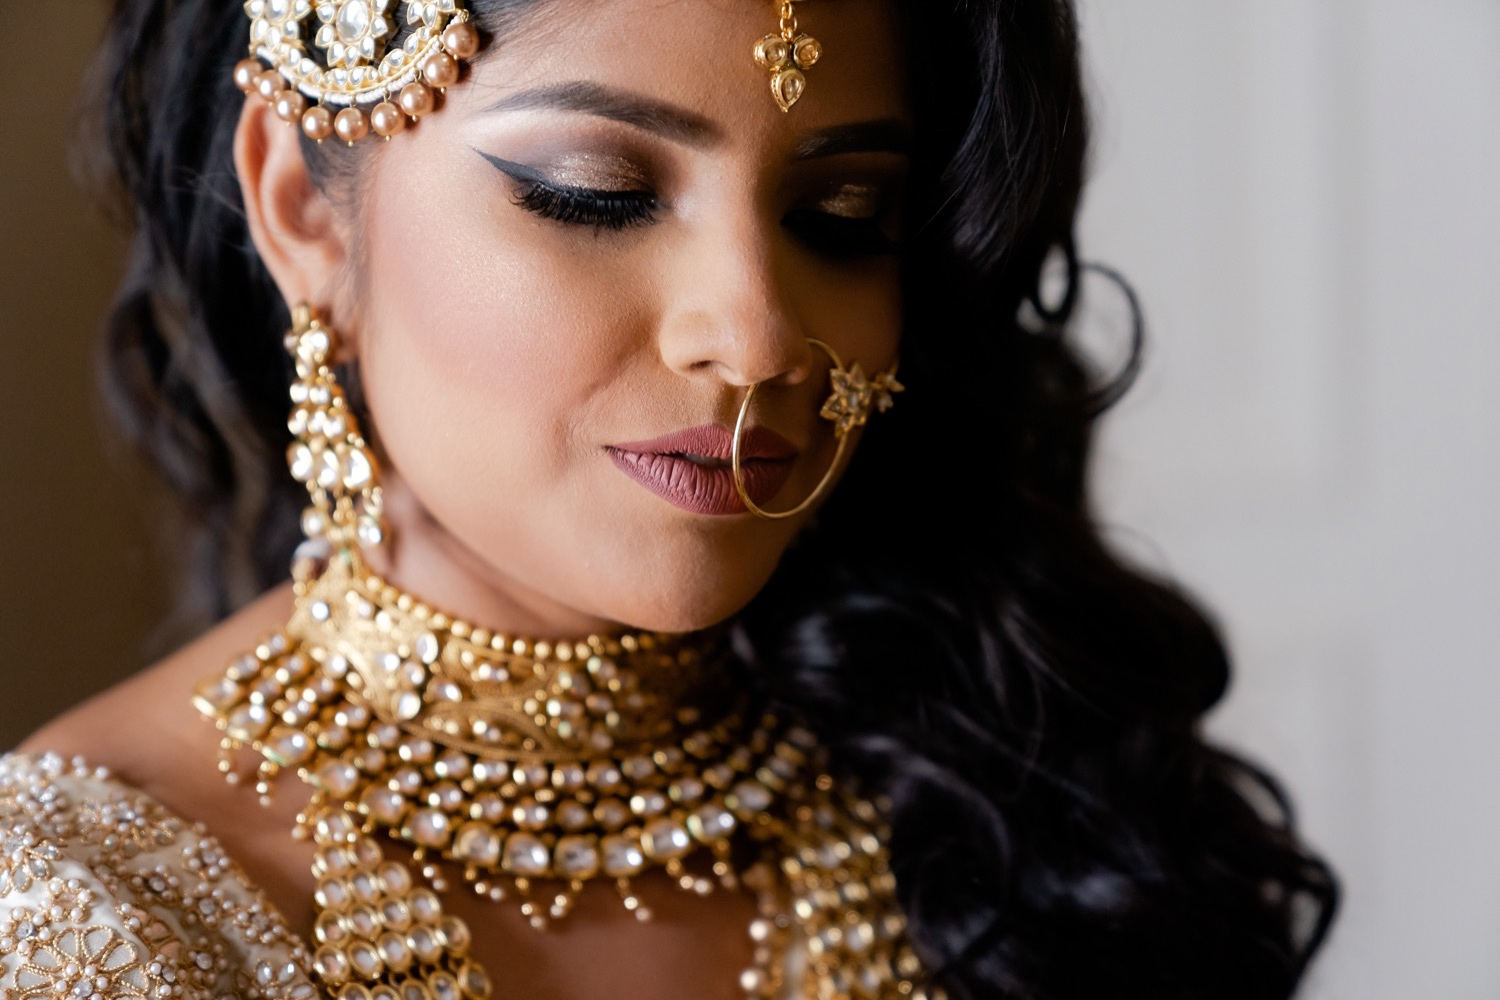 A close portrait of a bride who is getting married at the Tappan Hill Mansion.